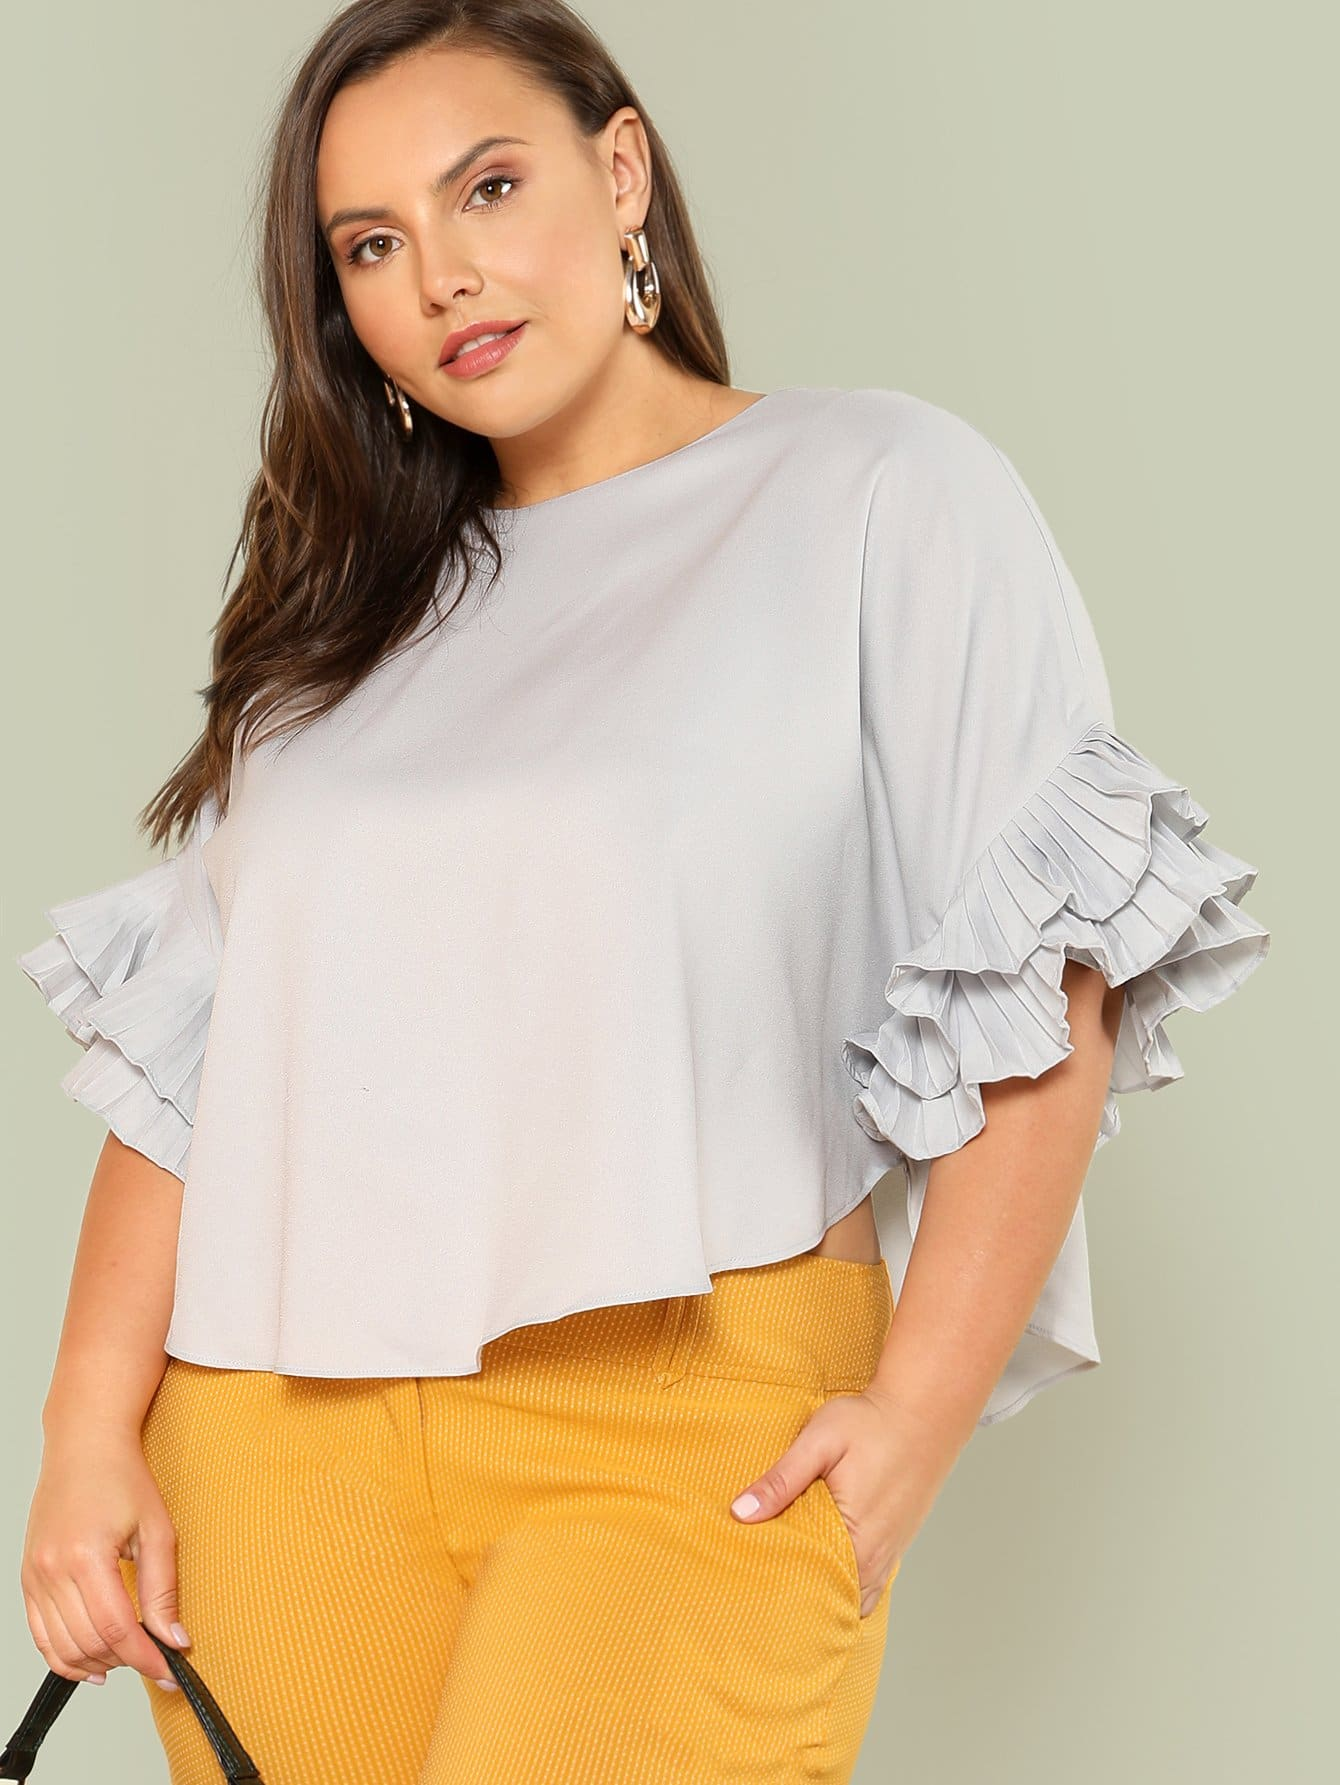 Layered Pleated Ruffle Sleeve Solid Top layered pleated ruffle sleeve solid top